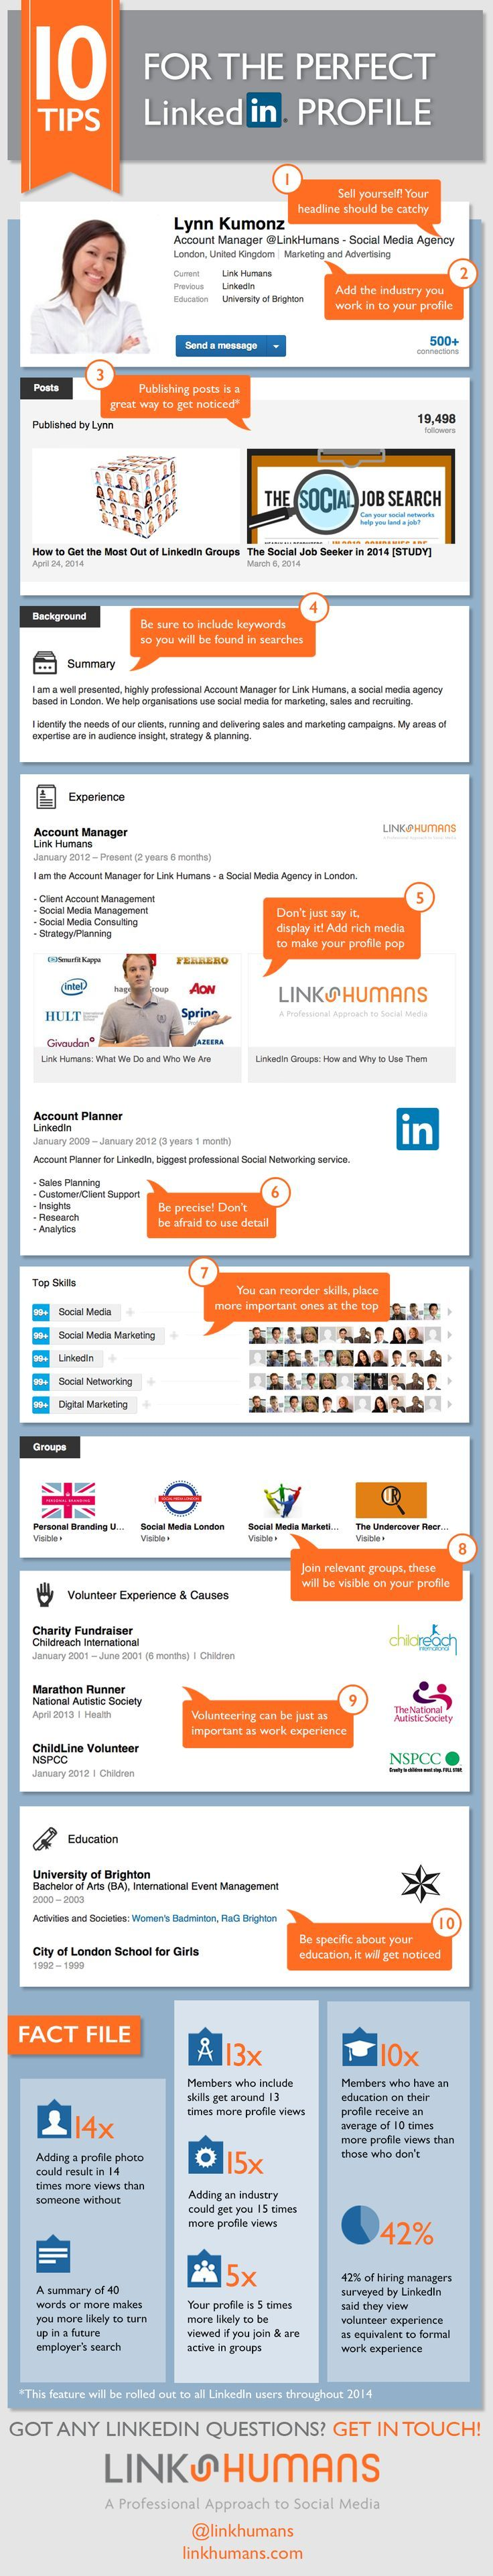 257 best Finding a Job | Resume Tips images on Pinterest | Job ...